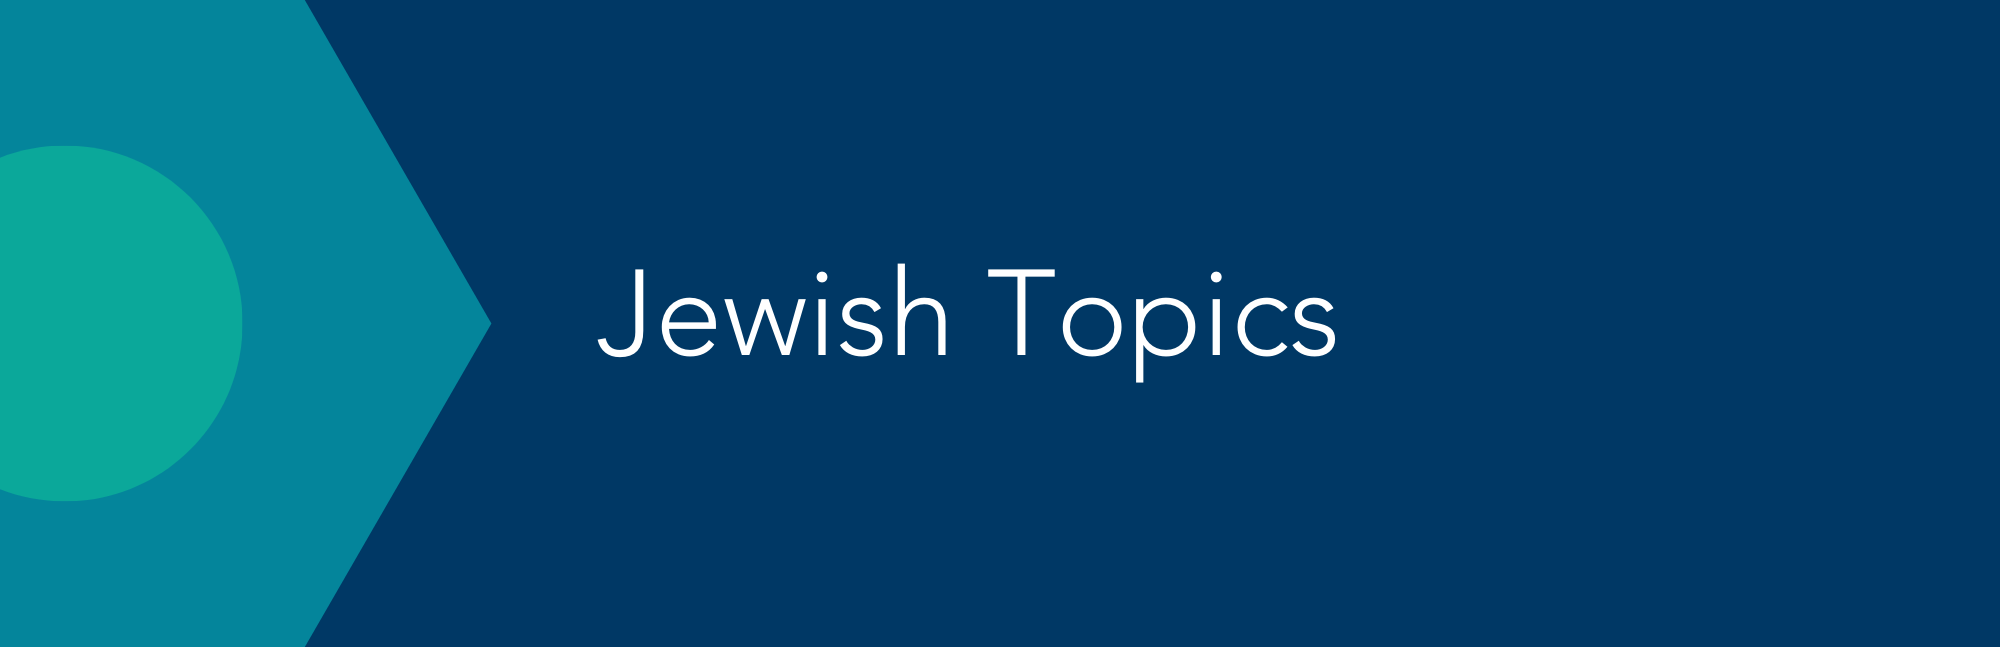 Jewish Topics Button